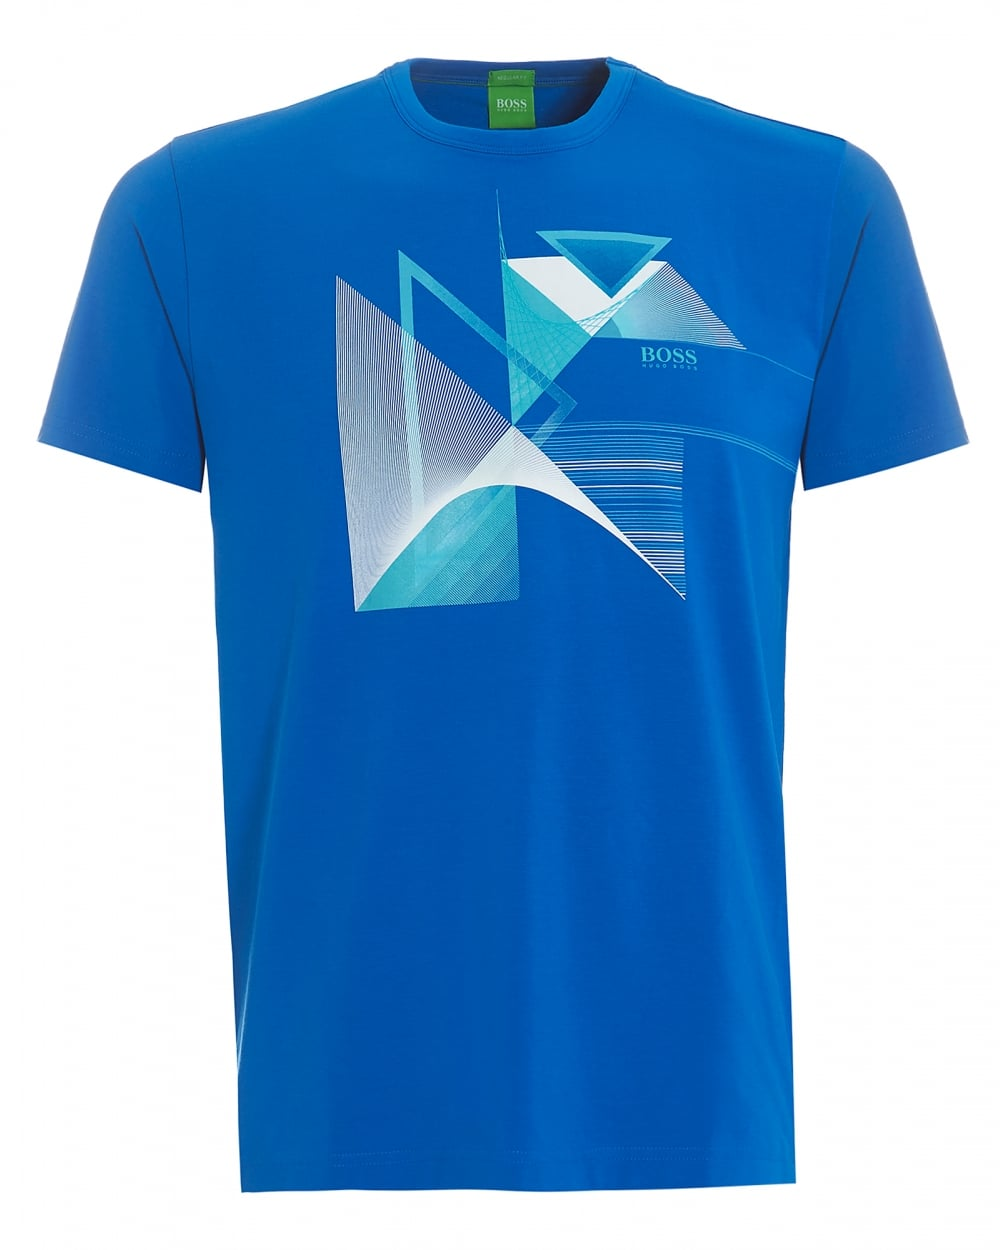 Mens Tee 7, Victoria Blue Geometric Triangles Graphic T-Shirt